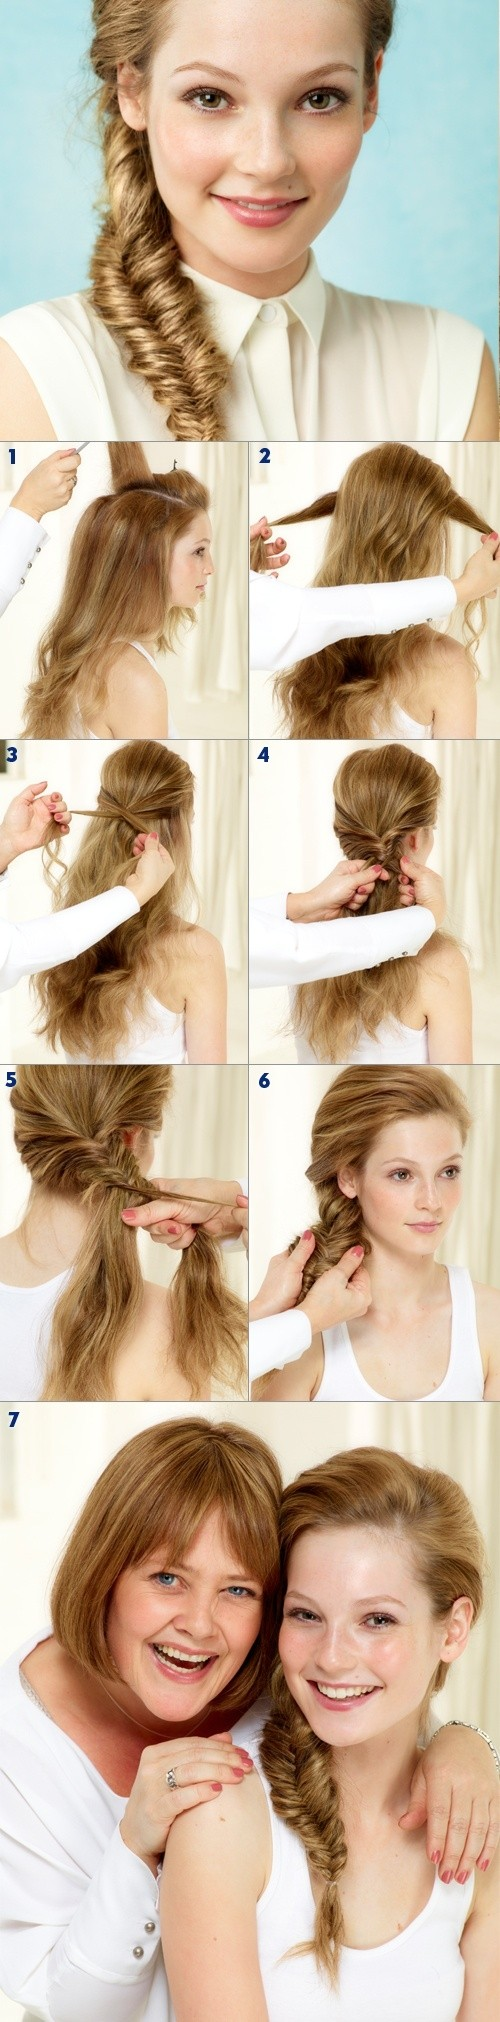 Wondrous 10 French Braids Hairstyles Tutorials Everyday Hair Styles Hairstyle Inspiration Daily Dogsangcom